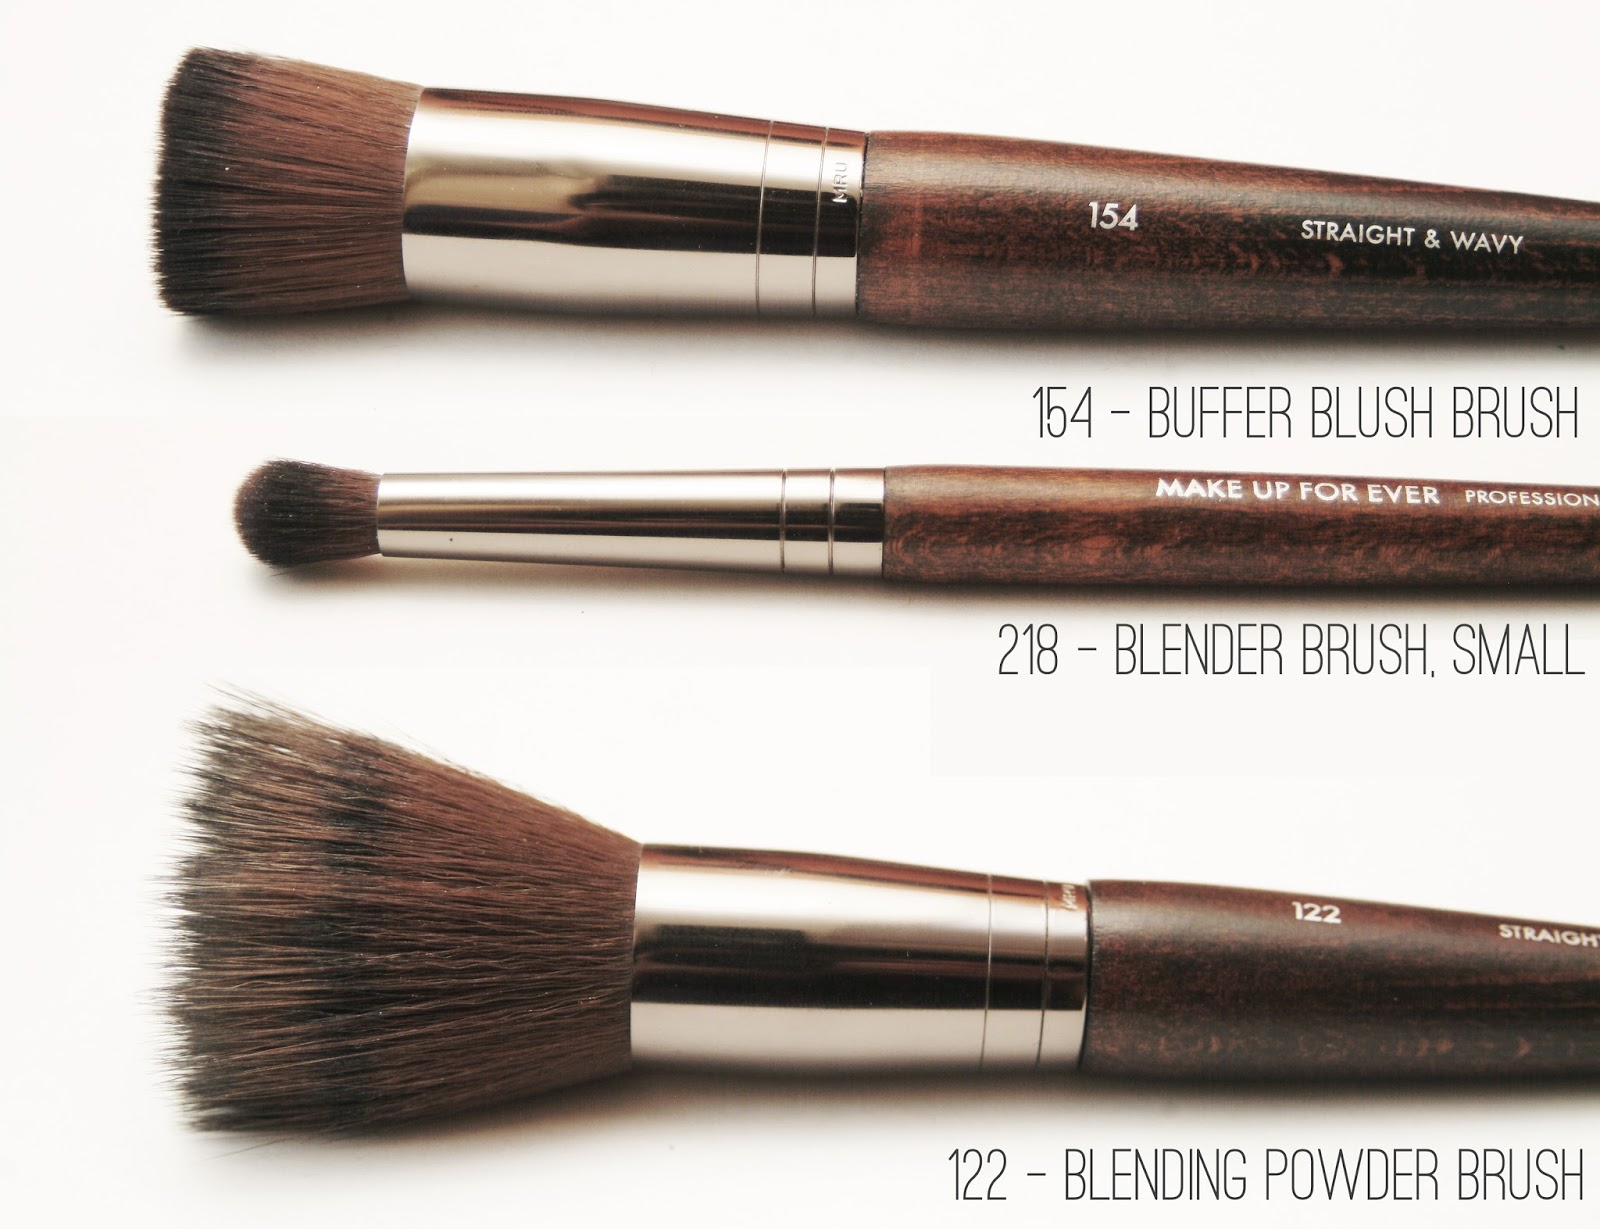 128 Precision Powder Brush by Make Up For Ever #21